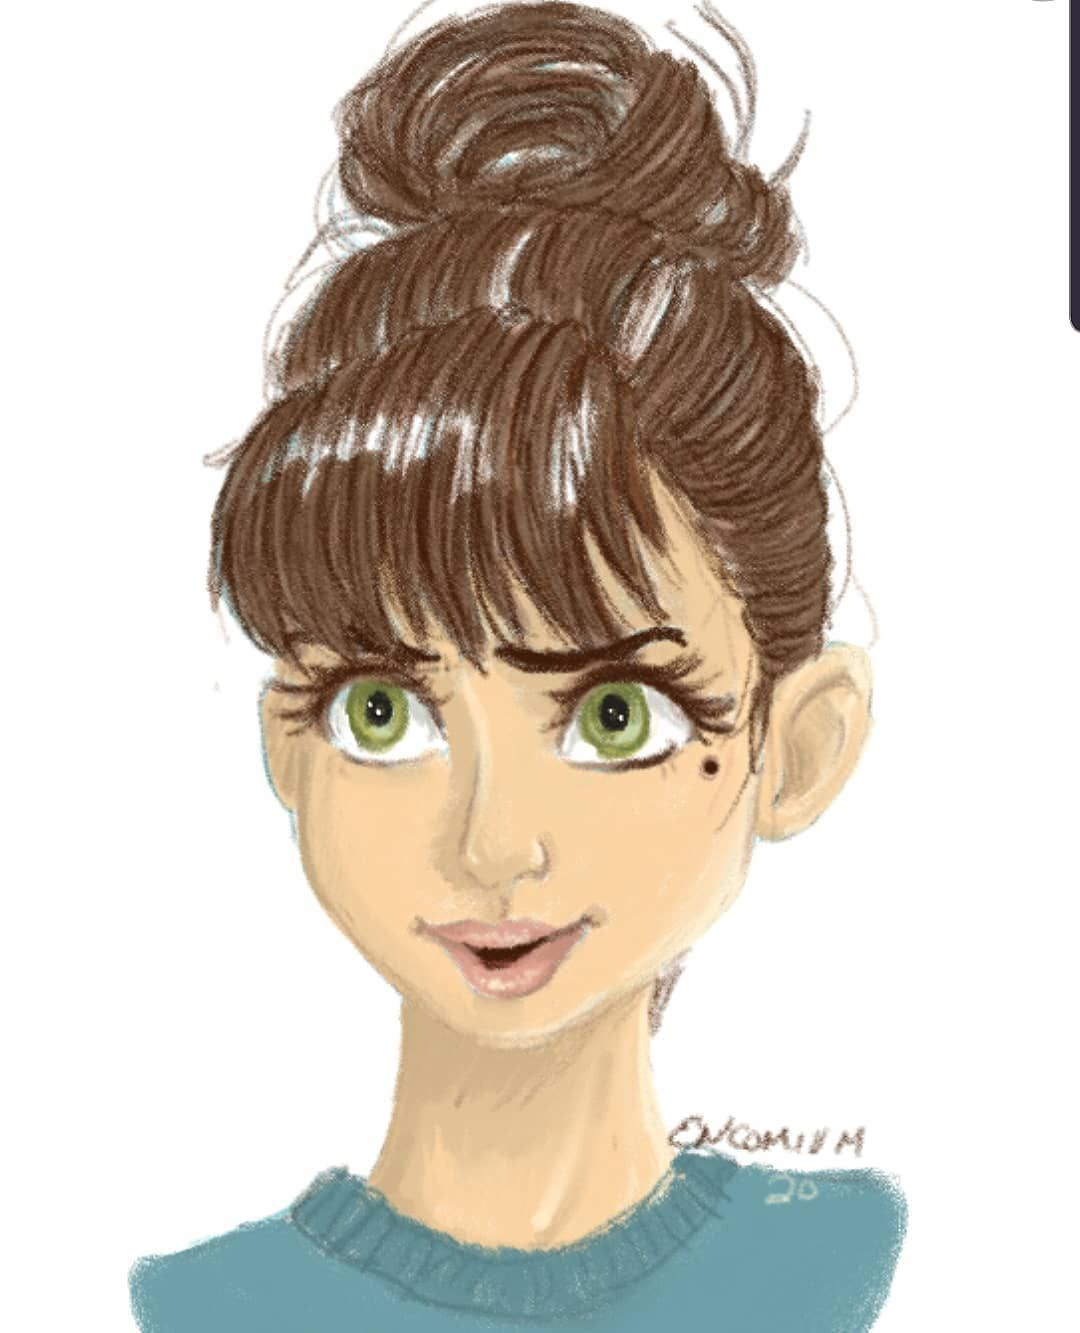 Pin By Edmund Foo On Body Drawing Anime Eyes Cute Anime Guys How To Draw Hair